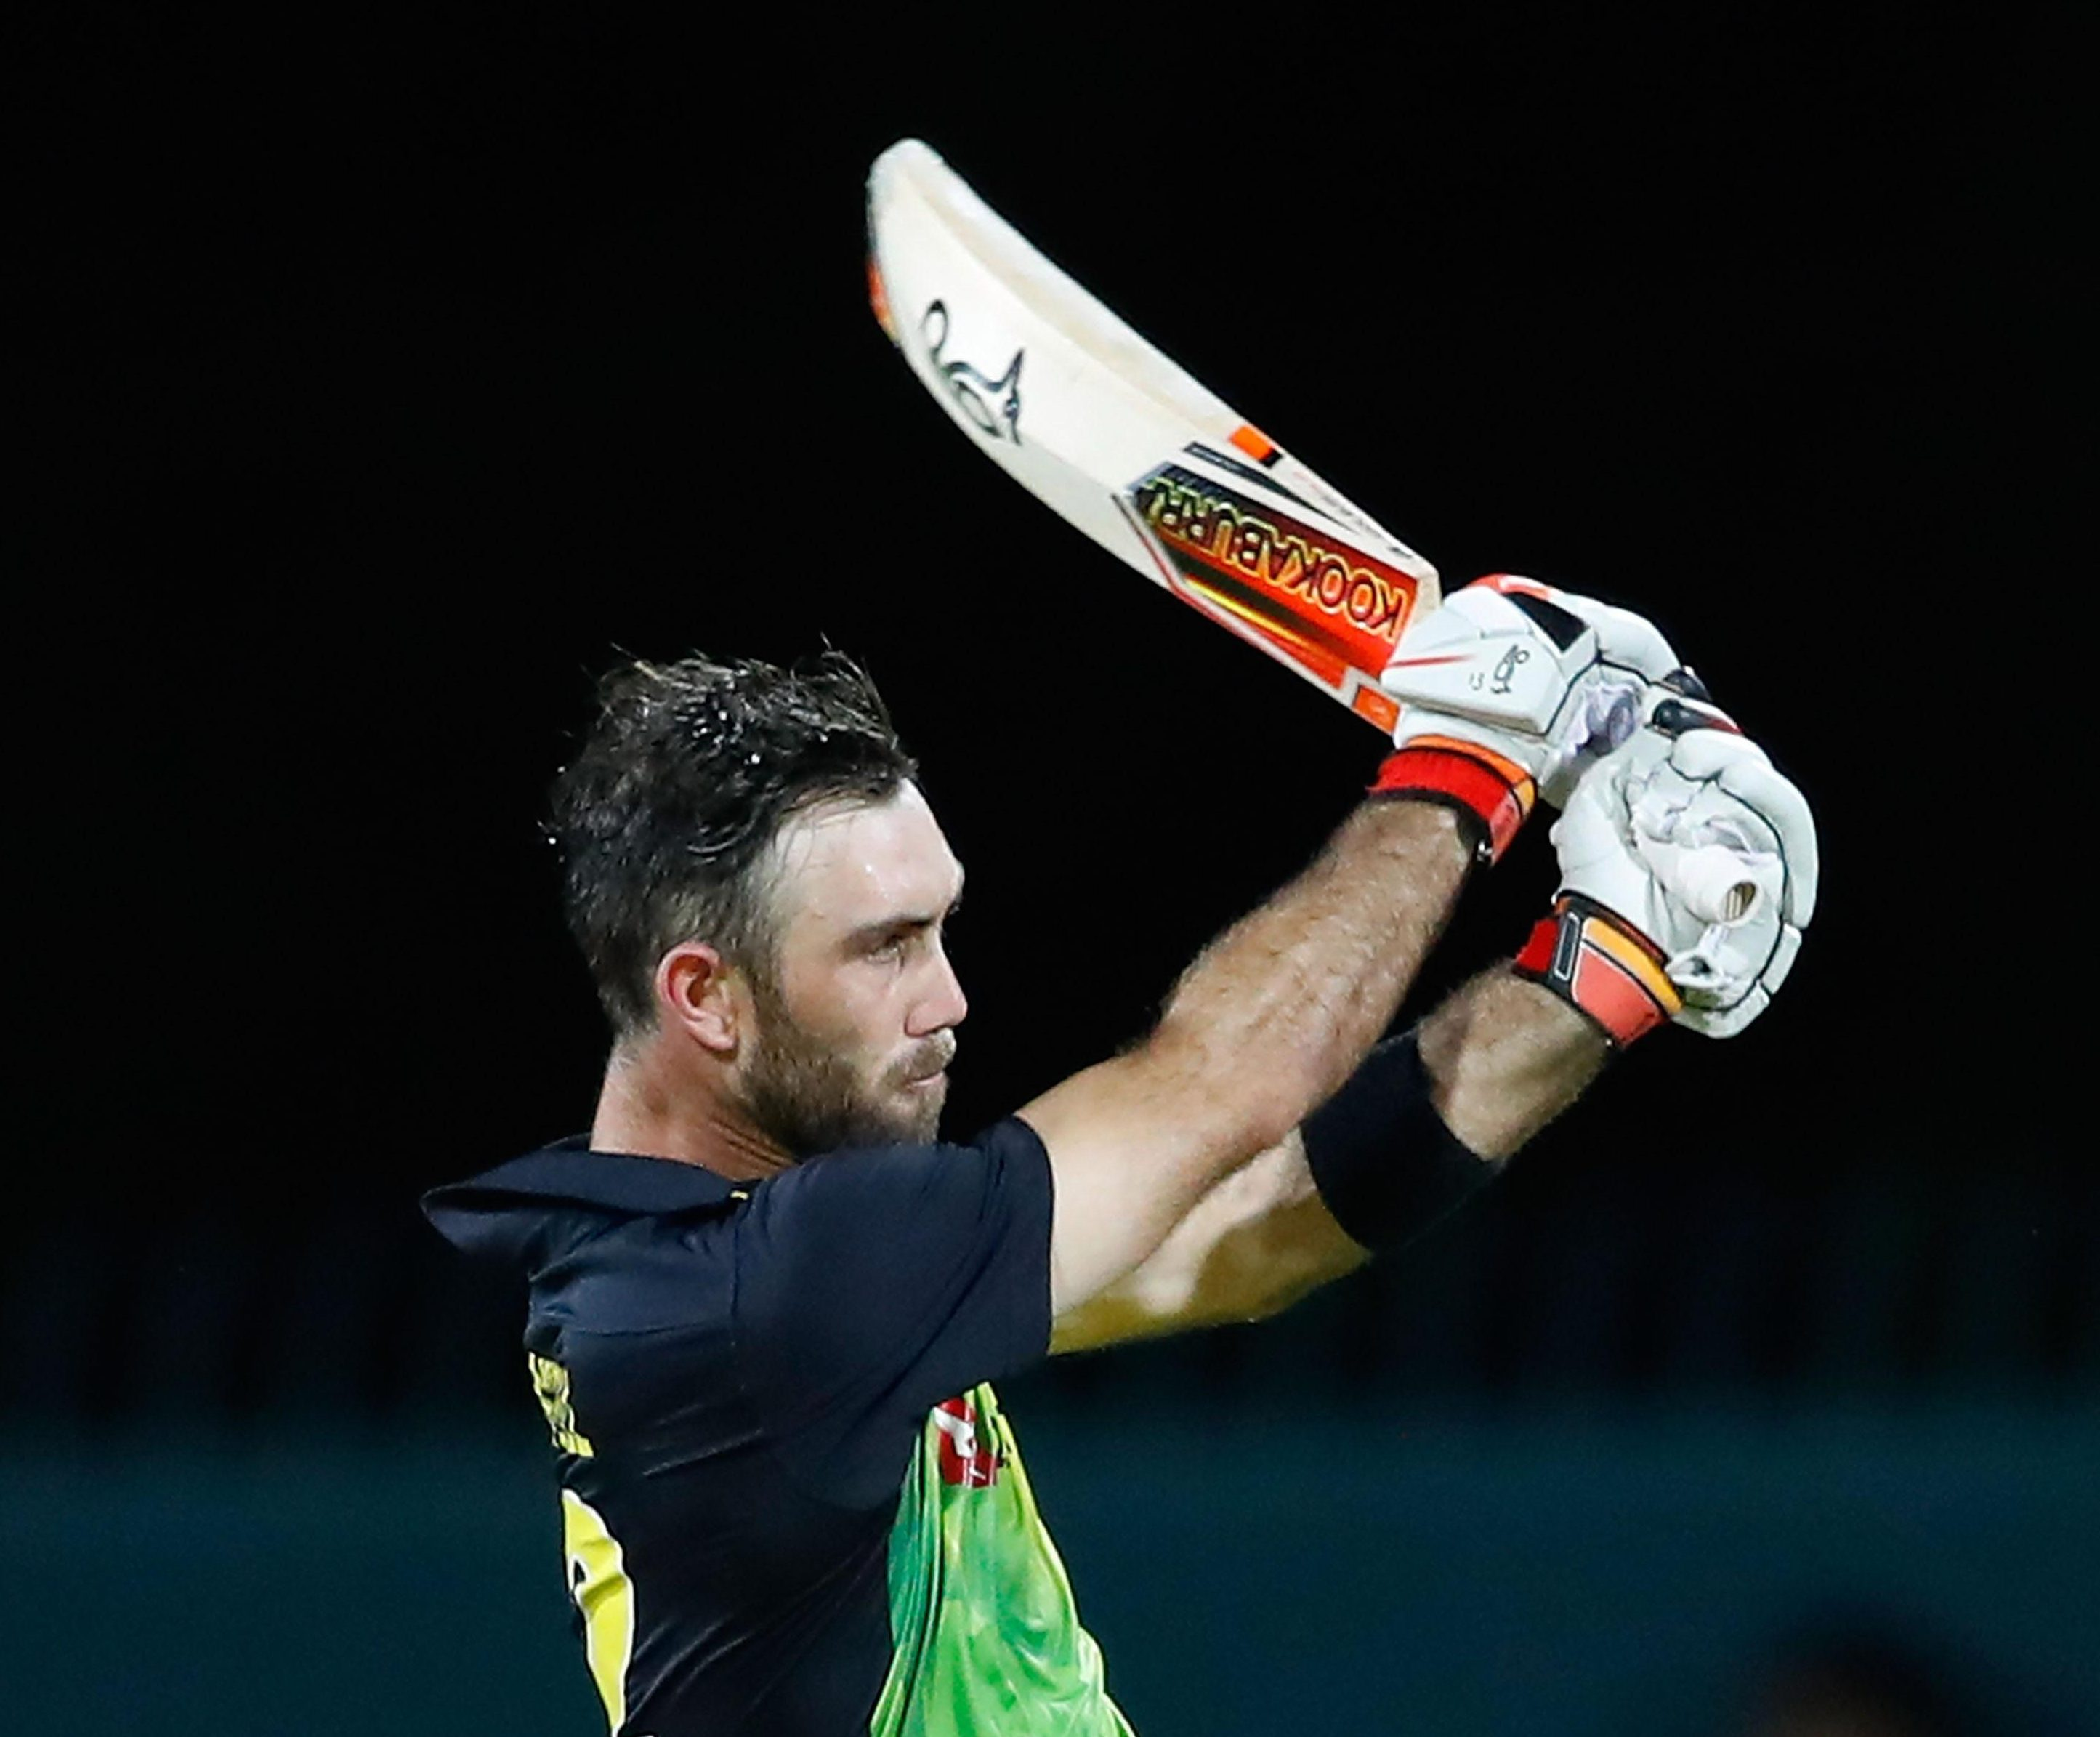 Glenn Maxwell powered Australia to victory in the Hobart showdown